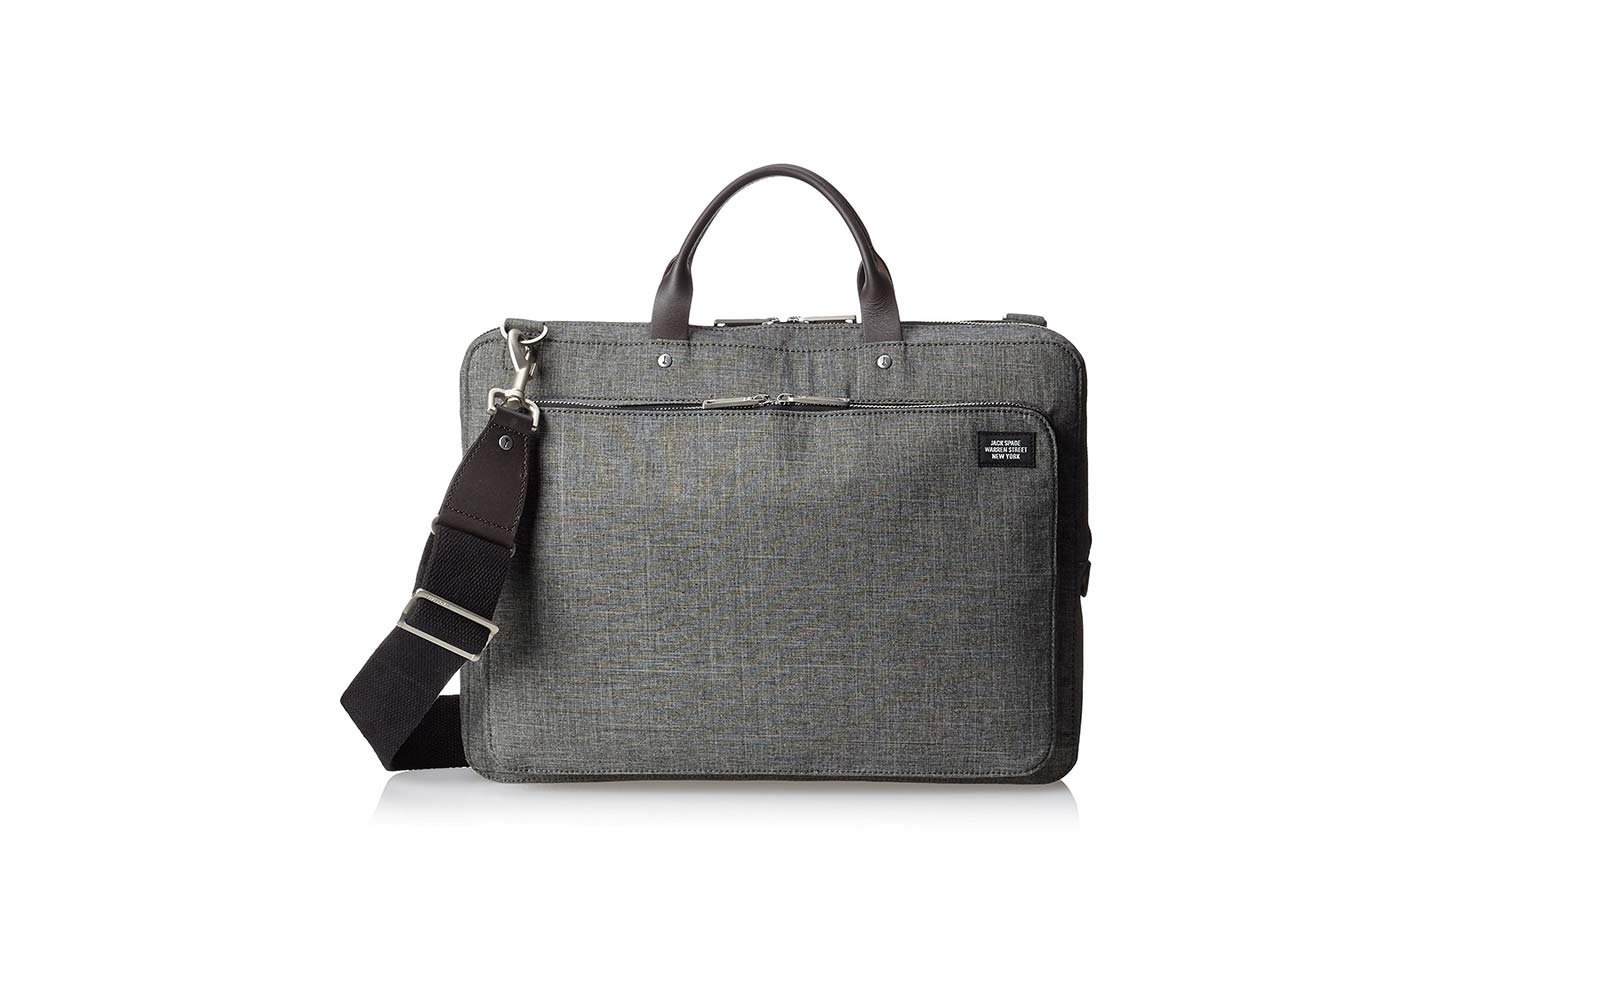 Laptop Backpack Bag Style Jack Spade